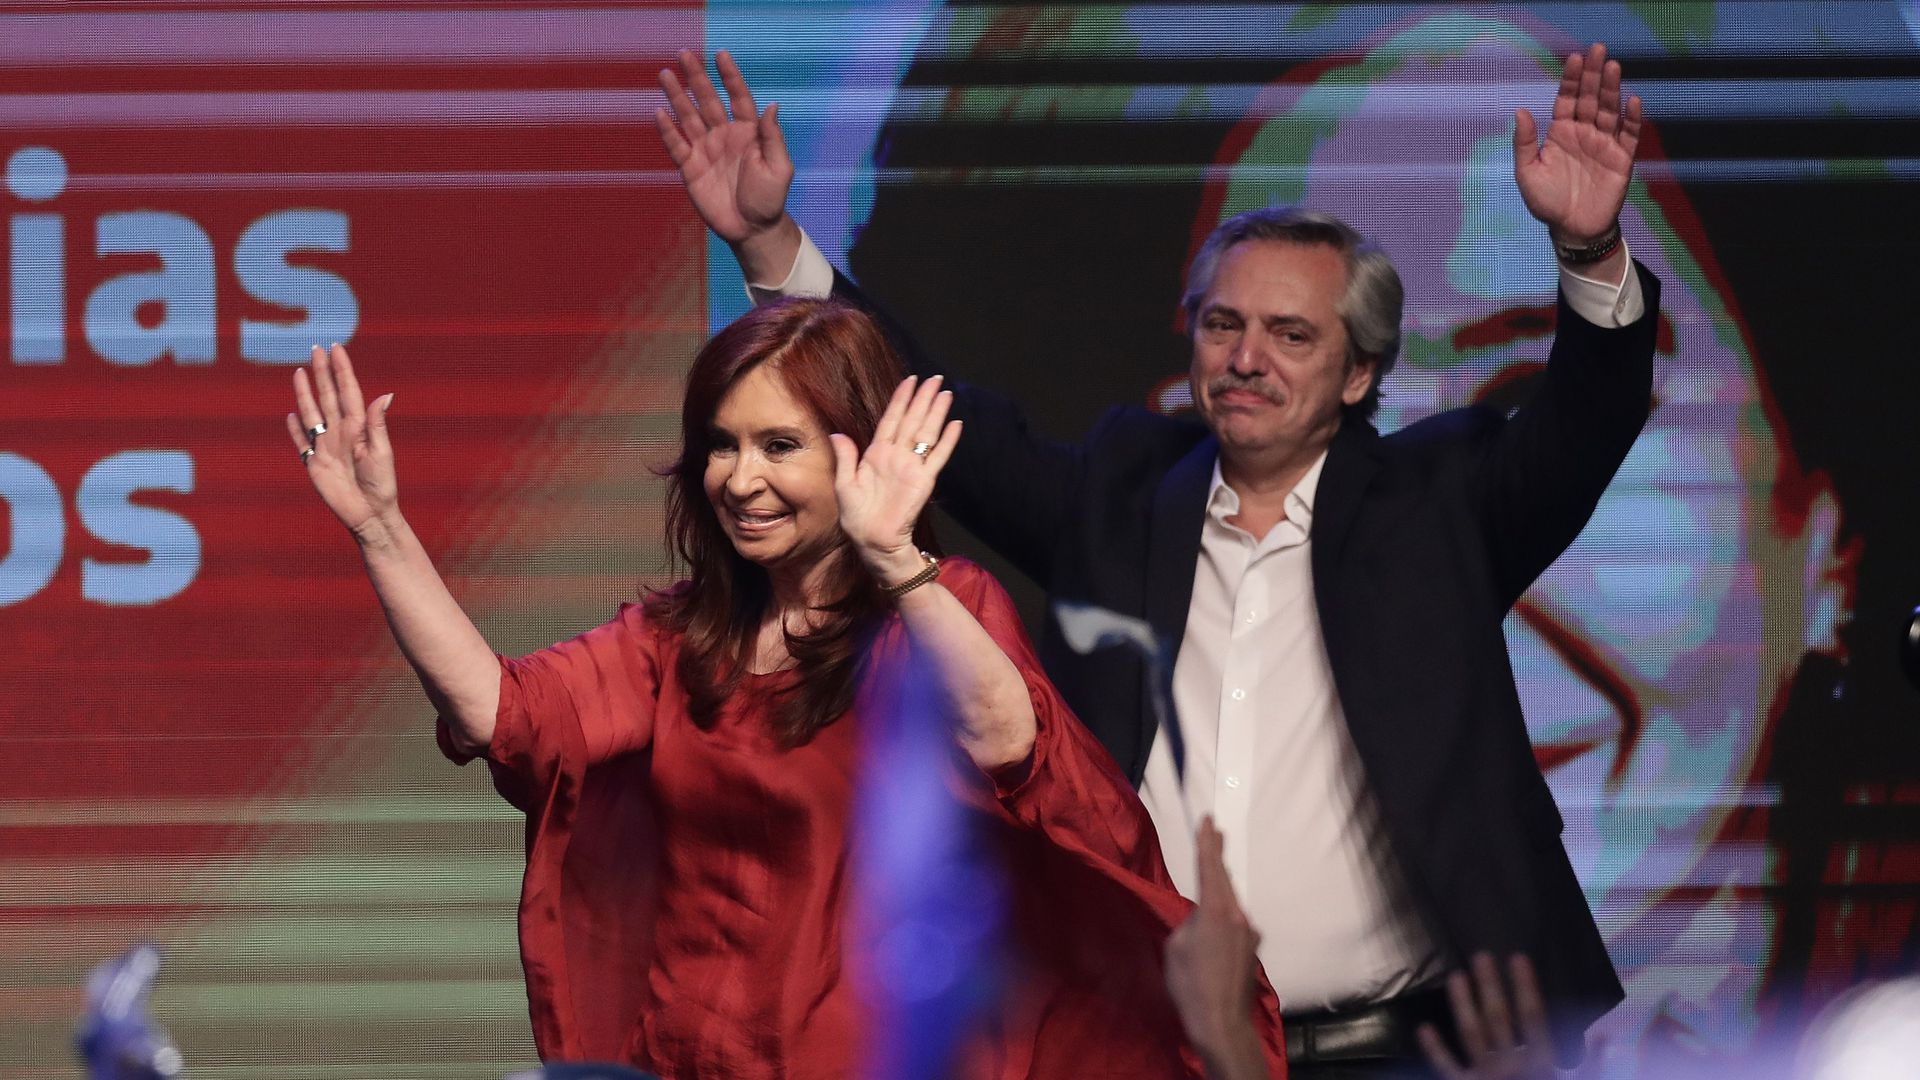 Argentina's president elect Alberto Fernandez and vice-president Cristina Fernandez wave at supporters at the headquarters of the party in Buenos Aires on October 27